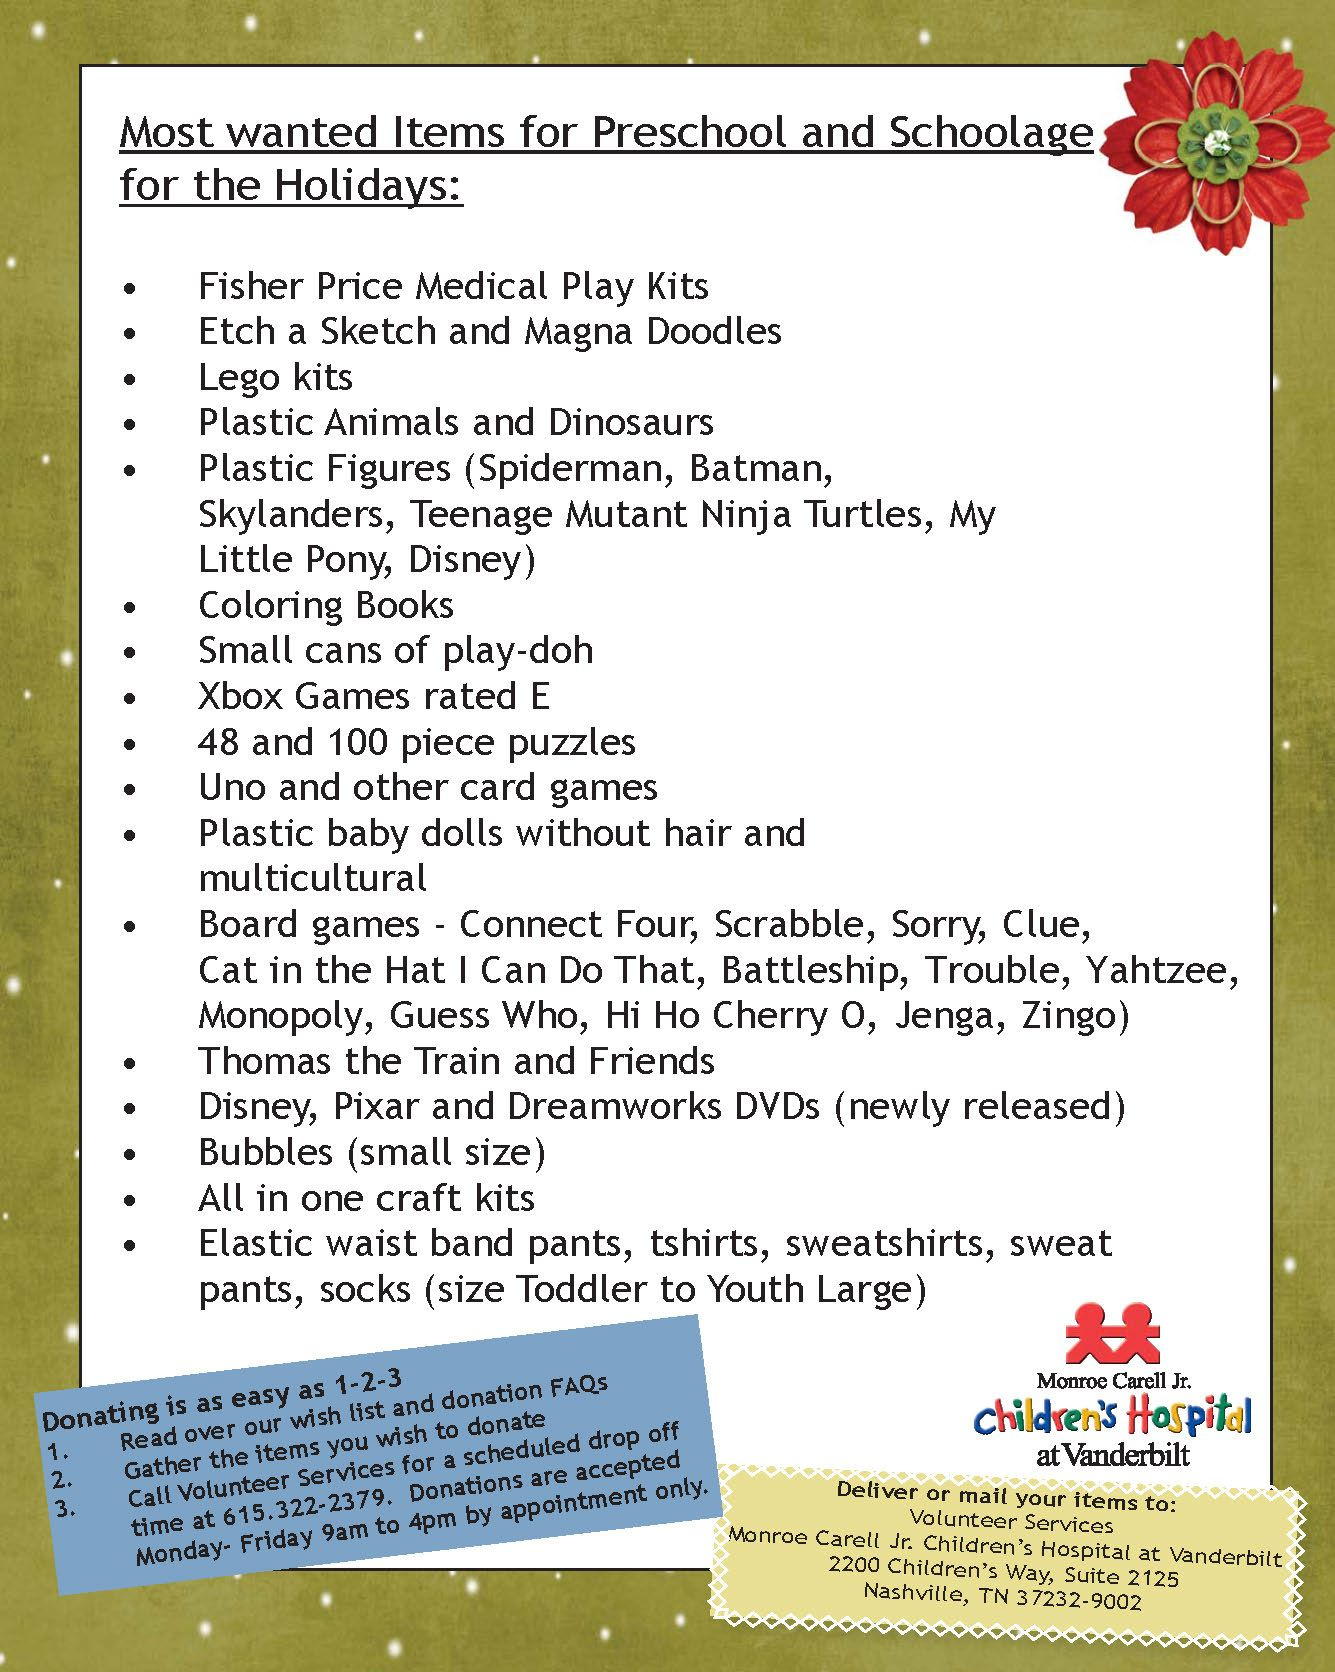 26b7e3675ea Help buy gifts for our schoolage and preschool population for the holidays.  Check out our most wanted holiday wish list for that age group.